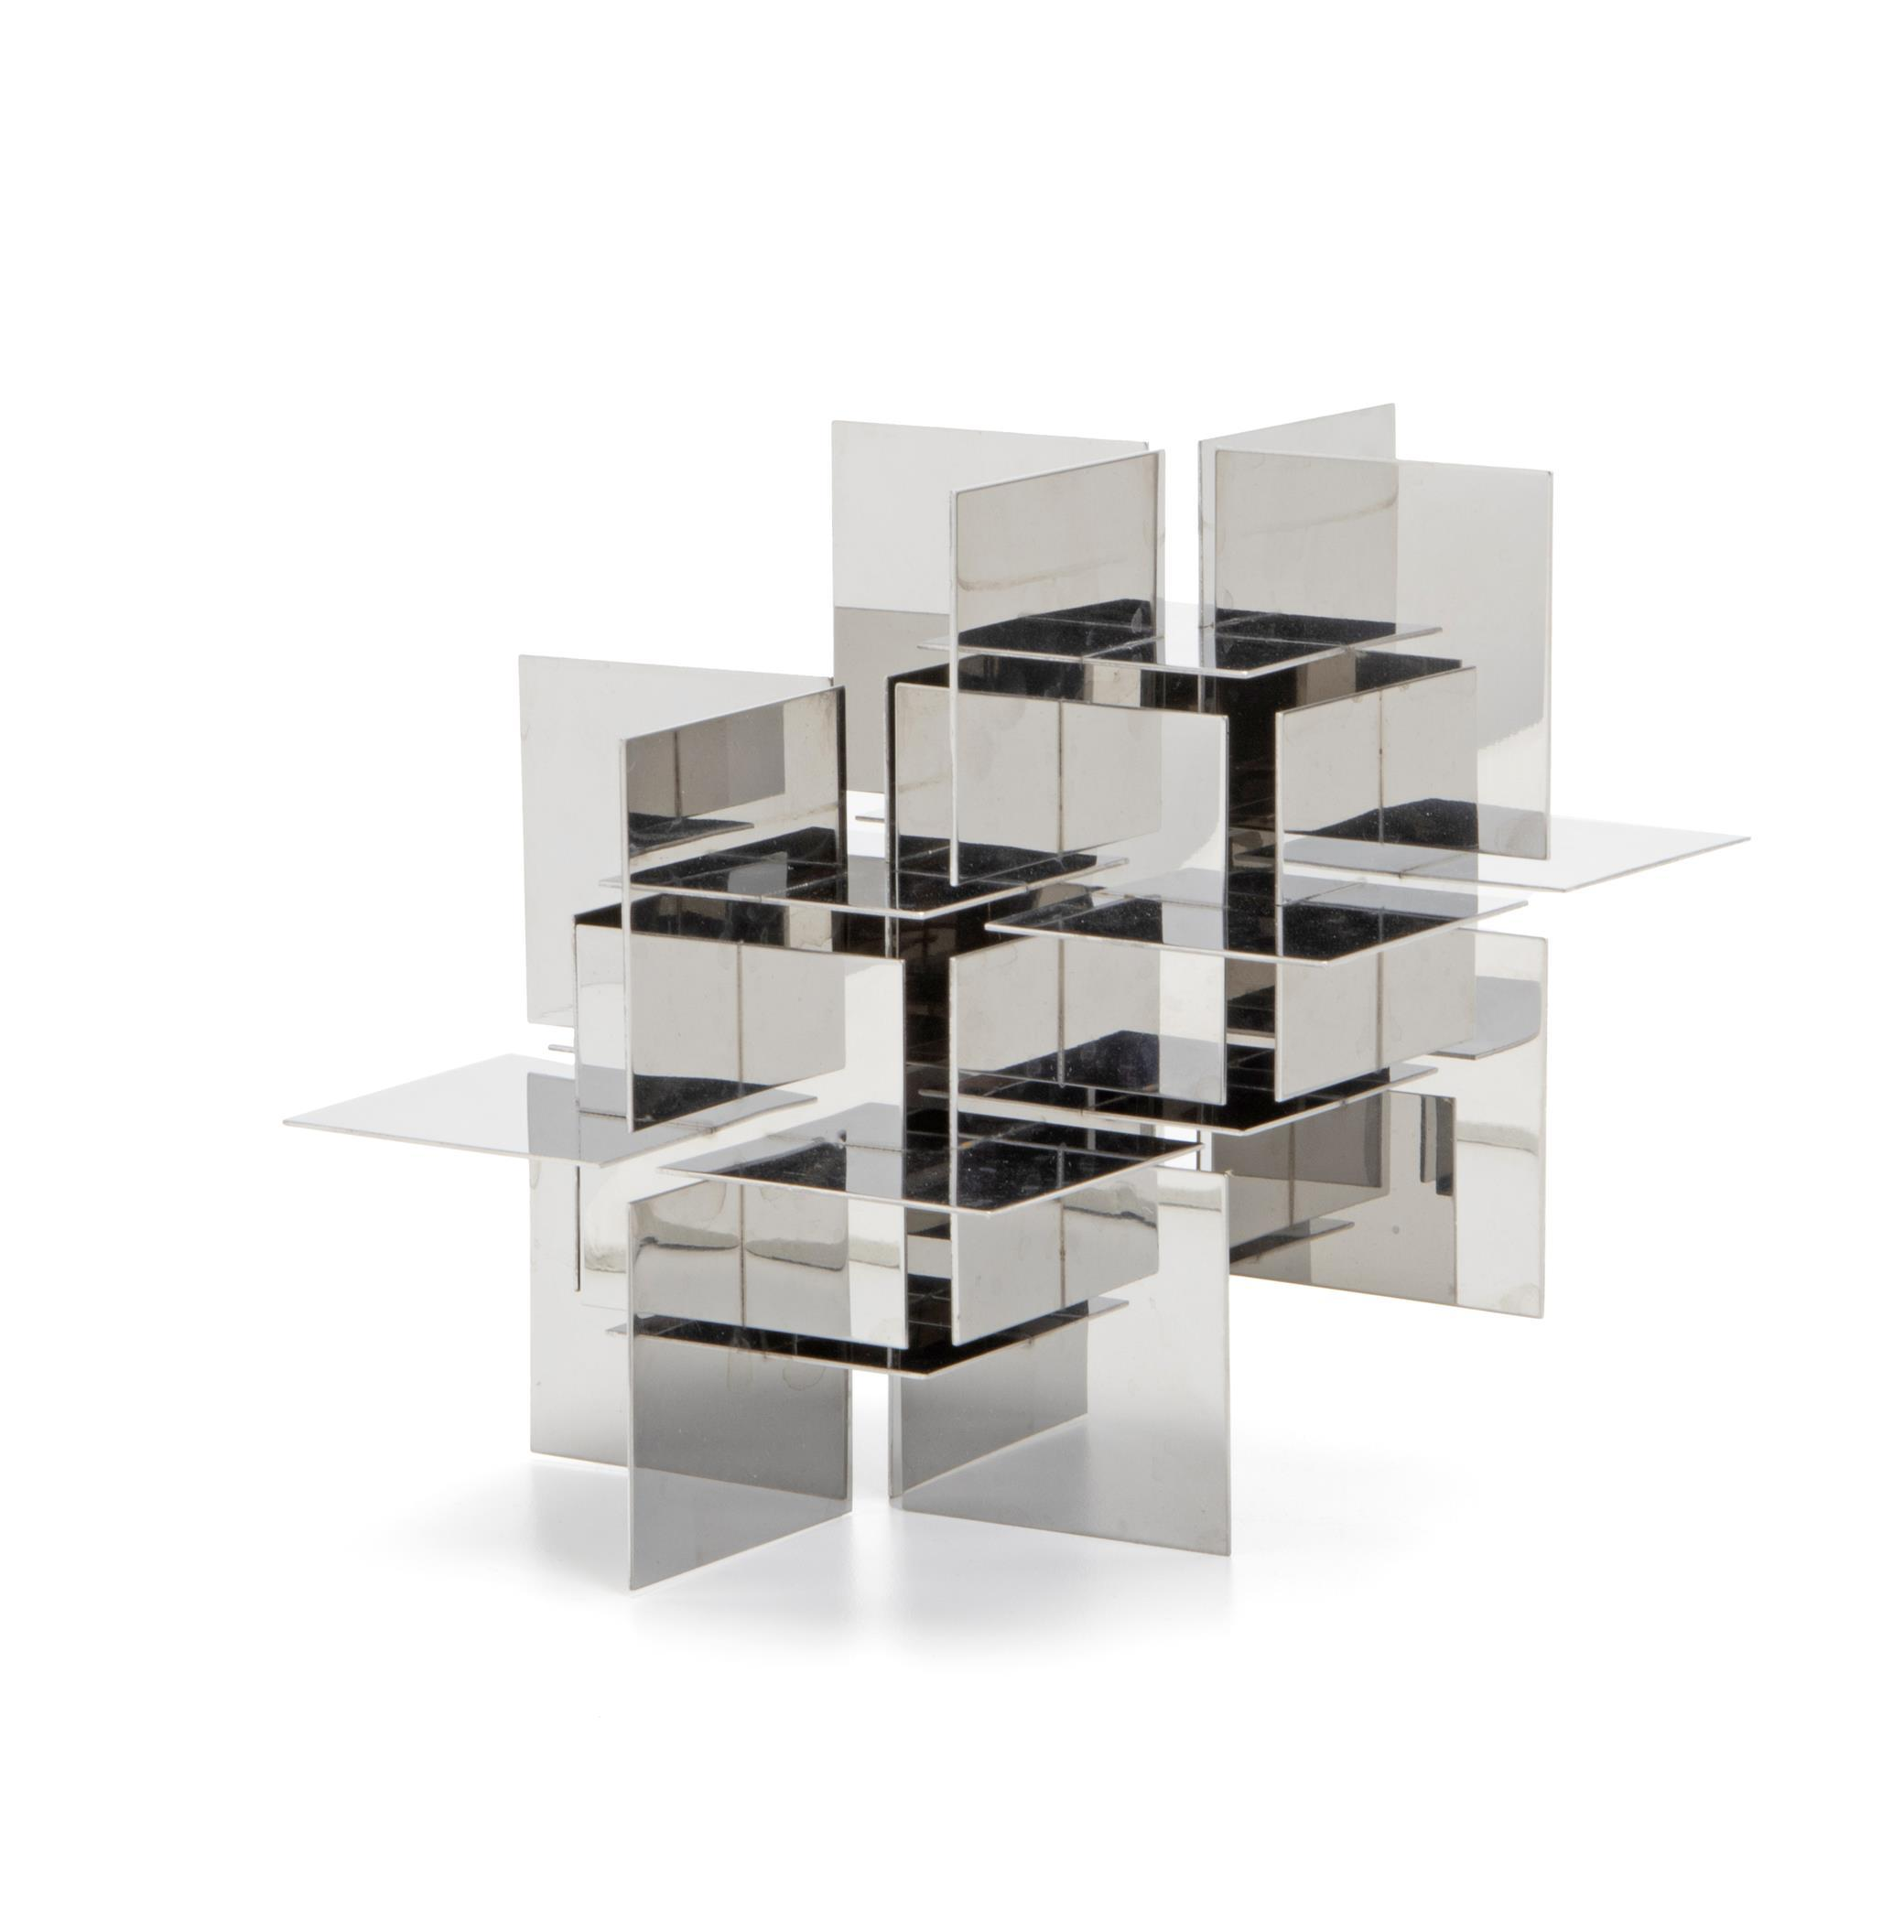 "Francisco Sobrino, (1932-2014, Spanish), Desk-top sculpture, 1970, Chrome-plated steel, 6"" H x 7"" W x 8.75"" D"